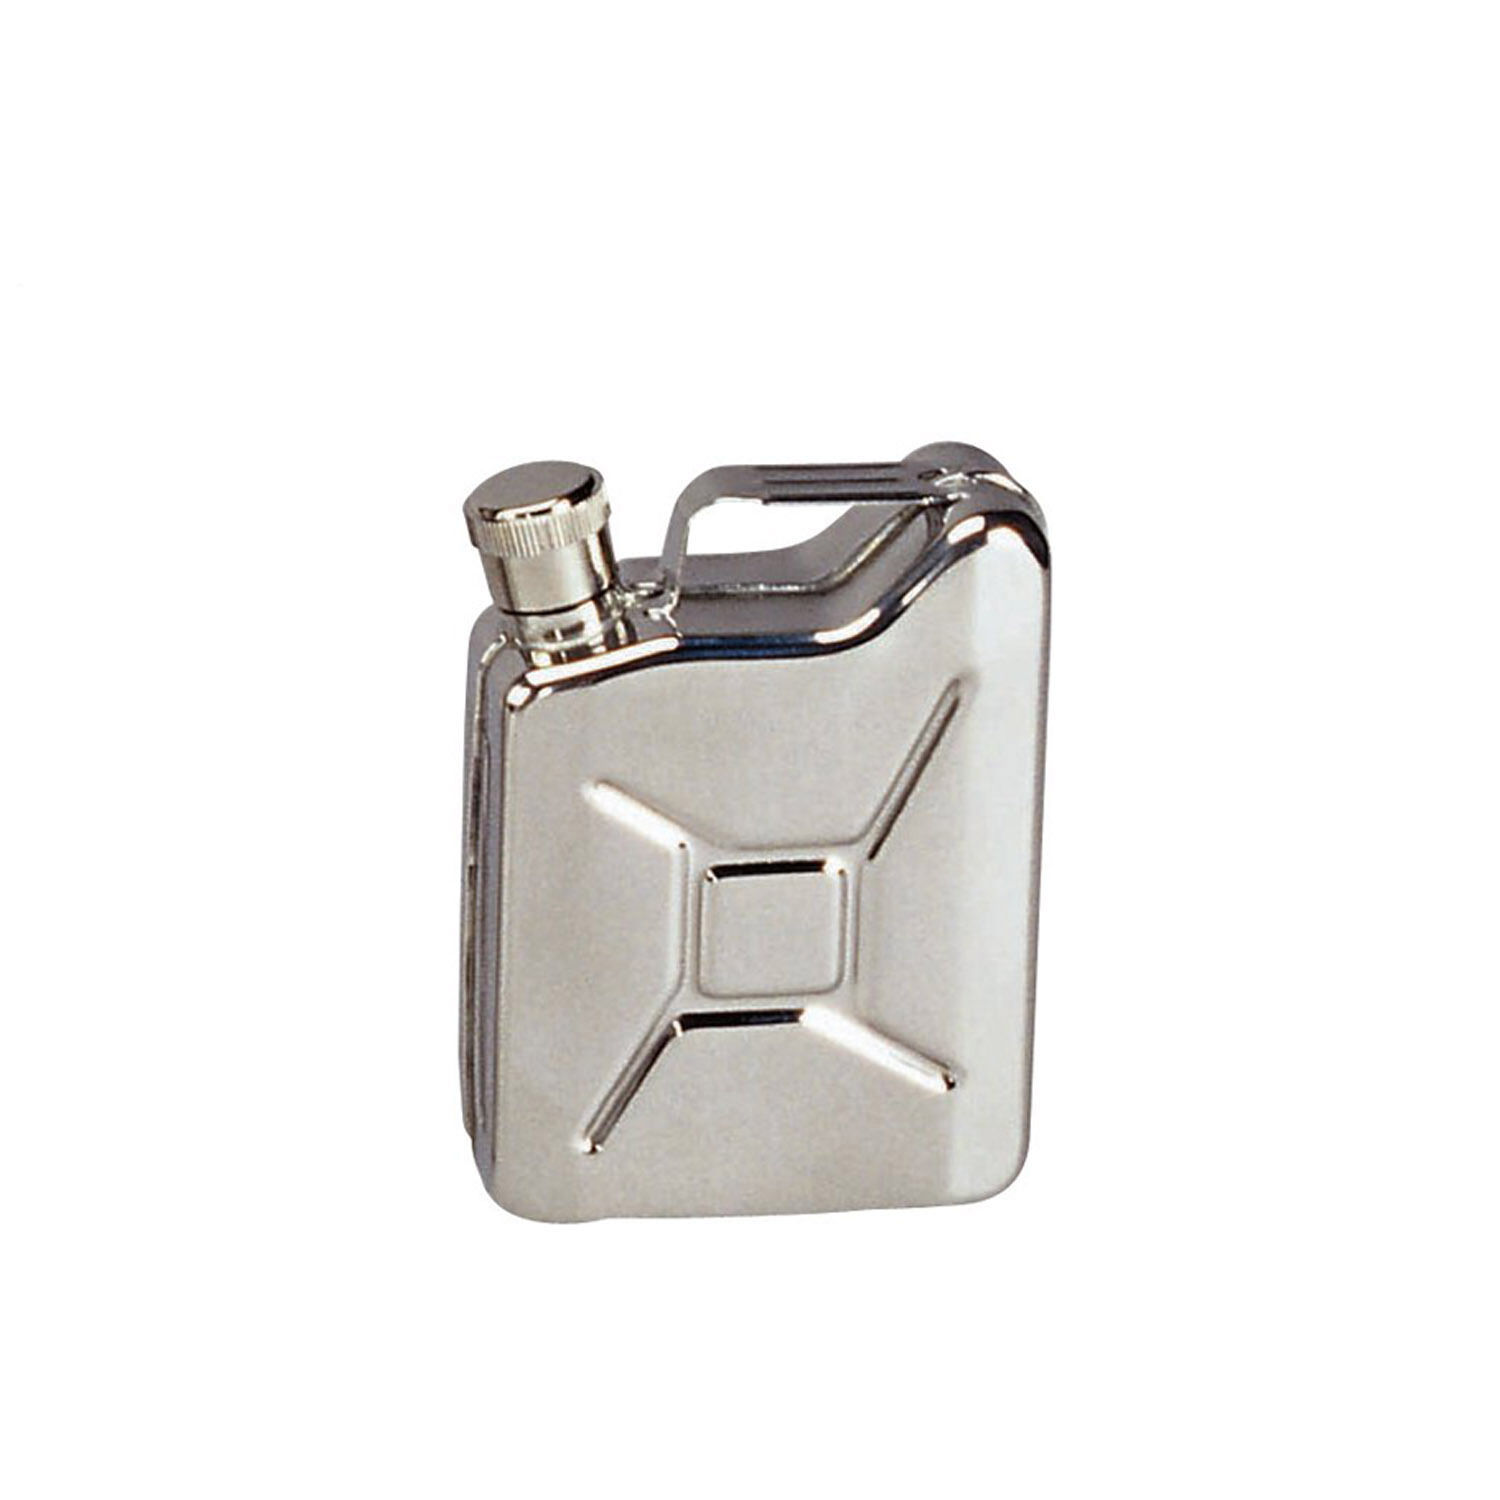 Hip Flask Stainless Steel Jerry Can Classic Military Fuel Can Style redhco 643